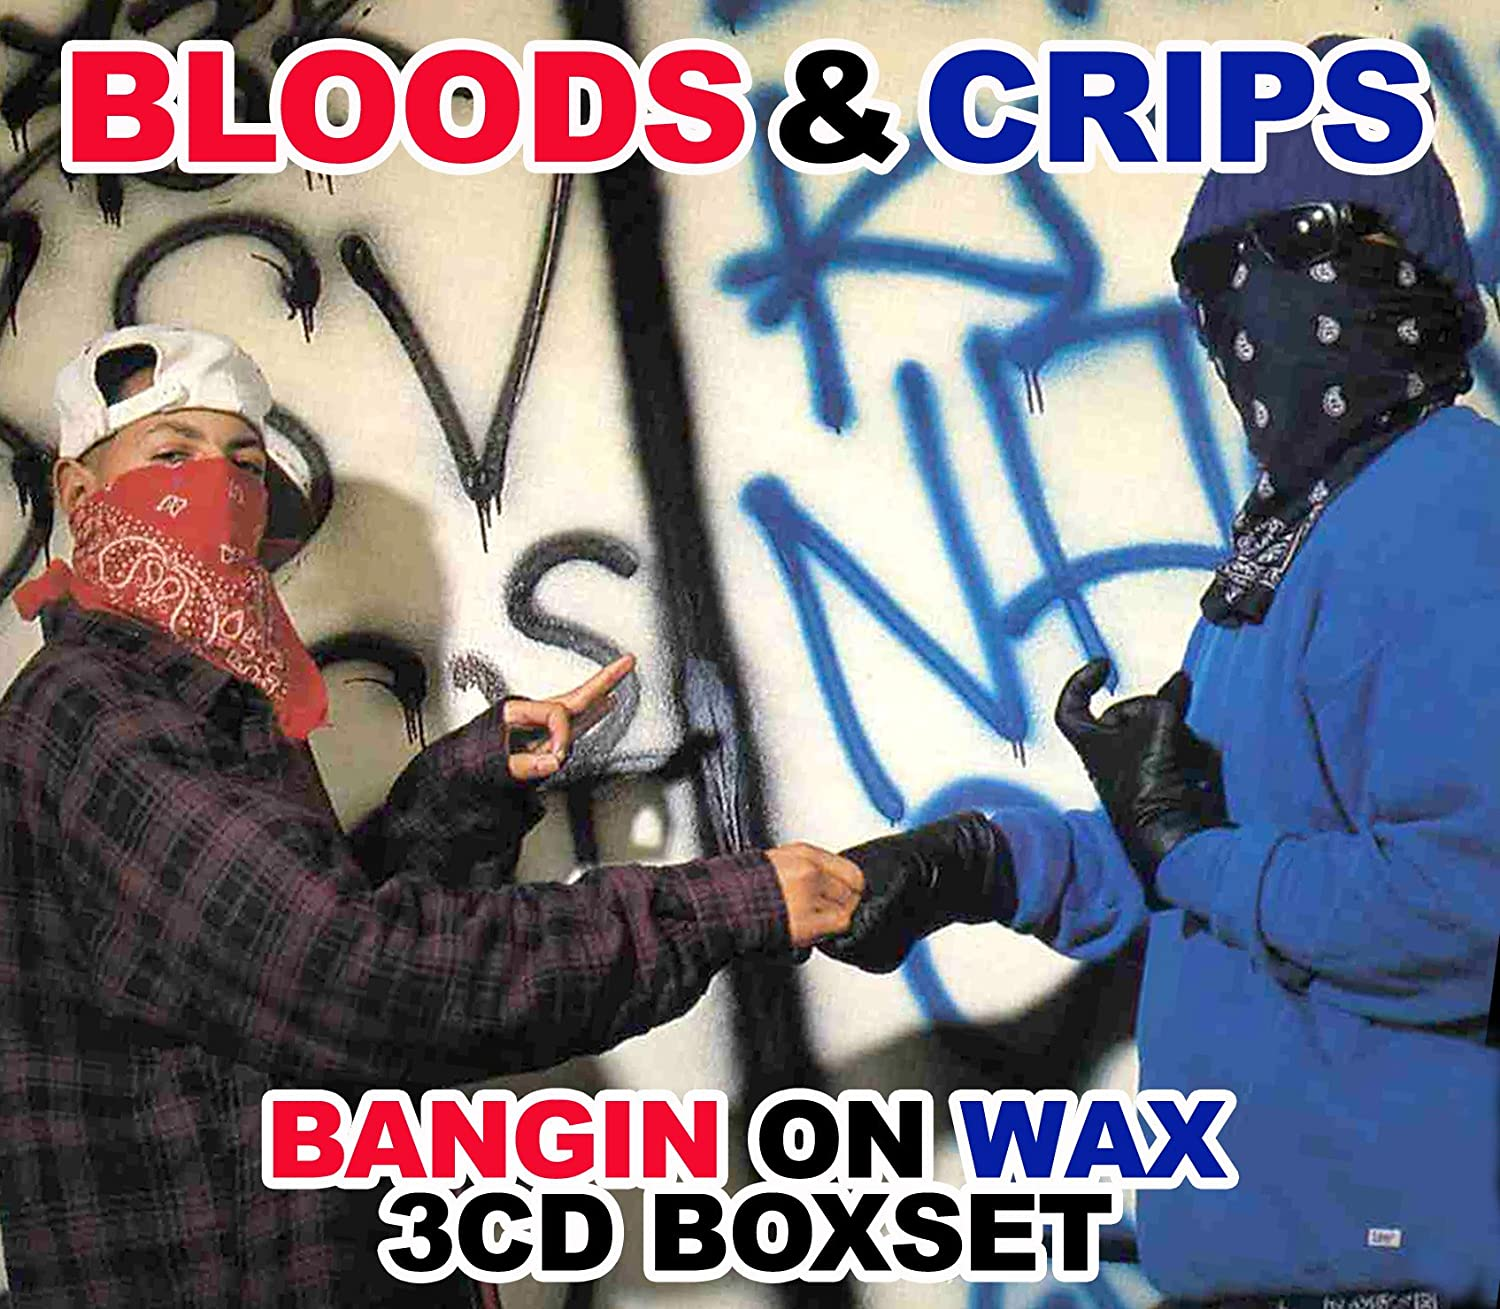 Bloods crips bangin on wax 3cd boxset amazon music thecheapjerseys Image collections